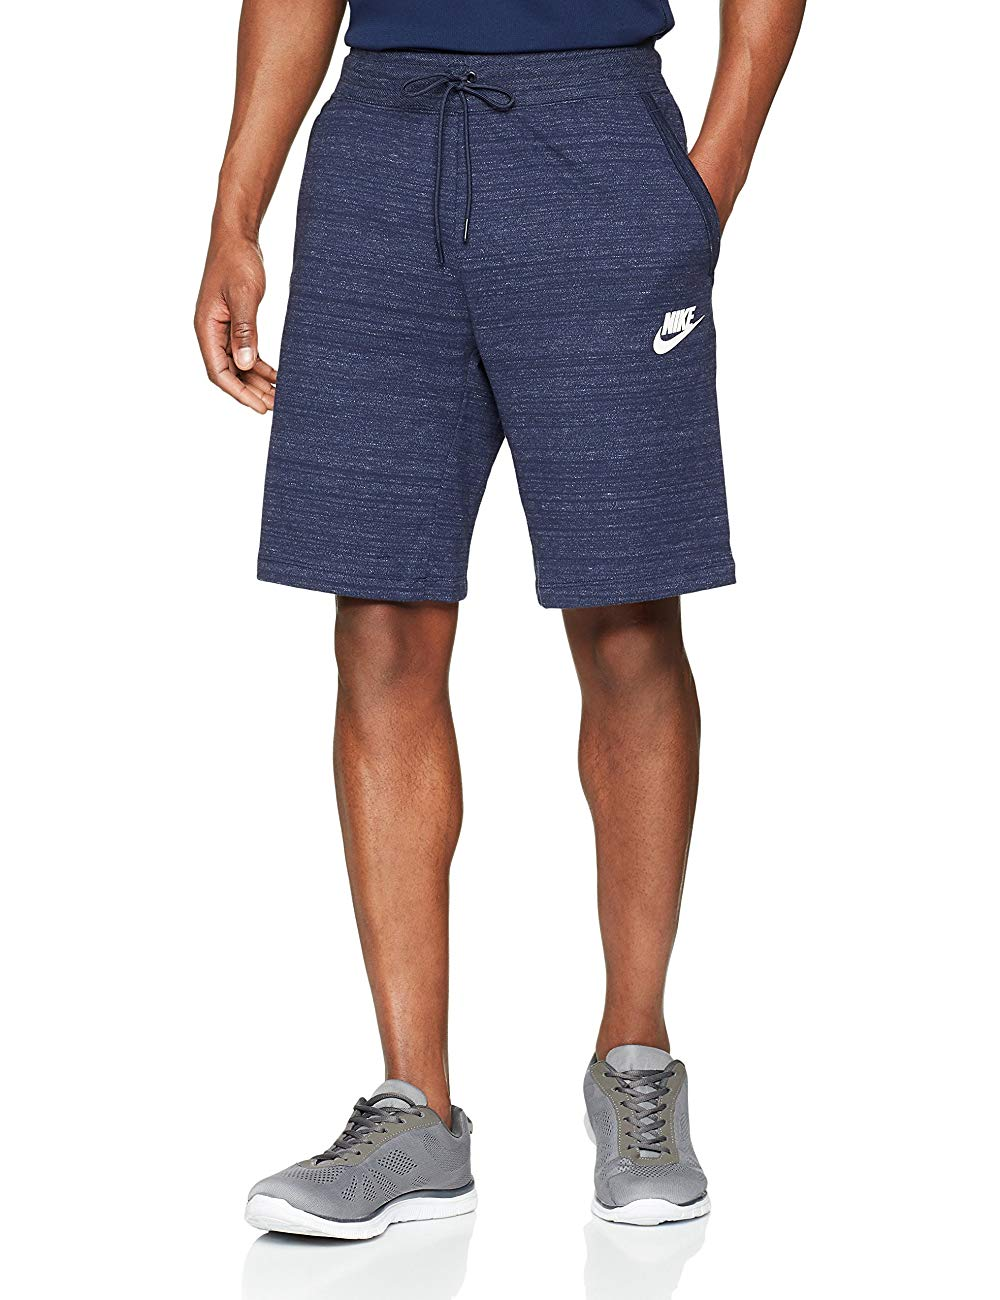 Mens Nike AV15 Knit Shorts          885925-451